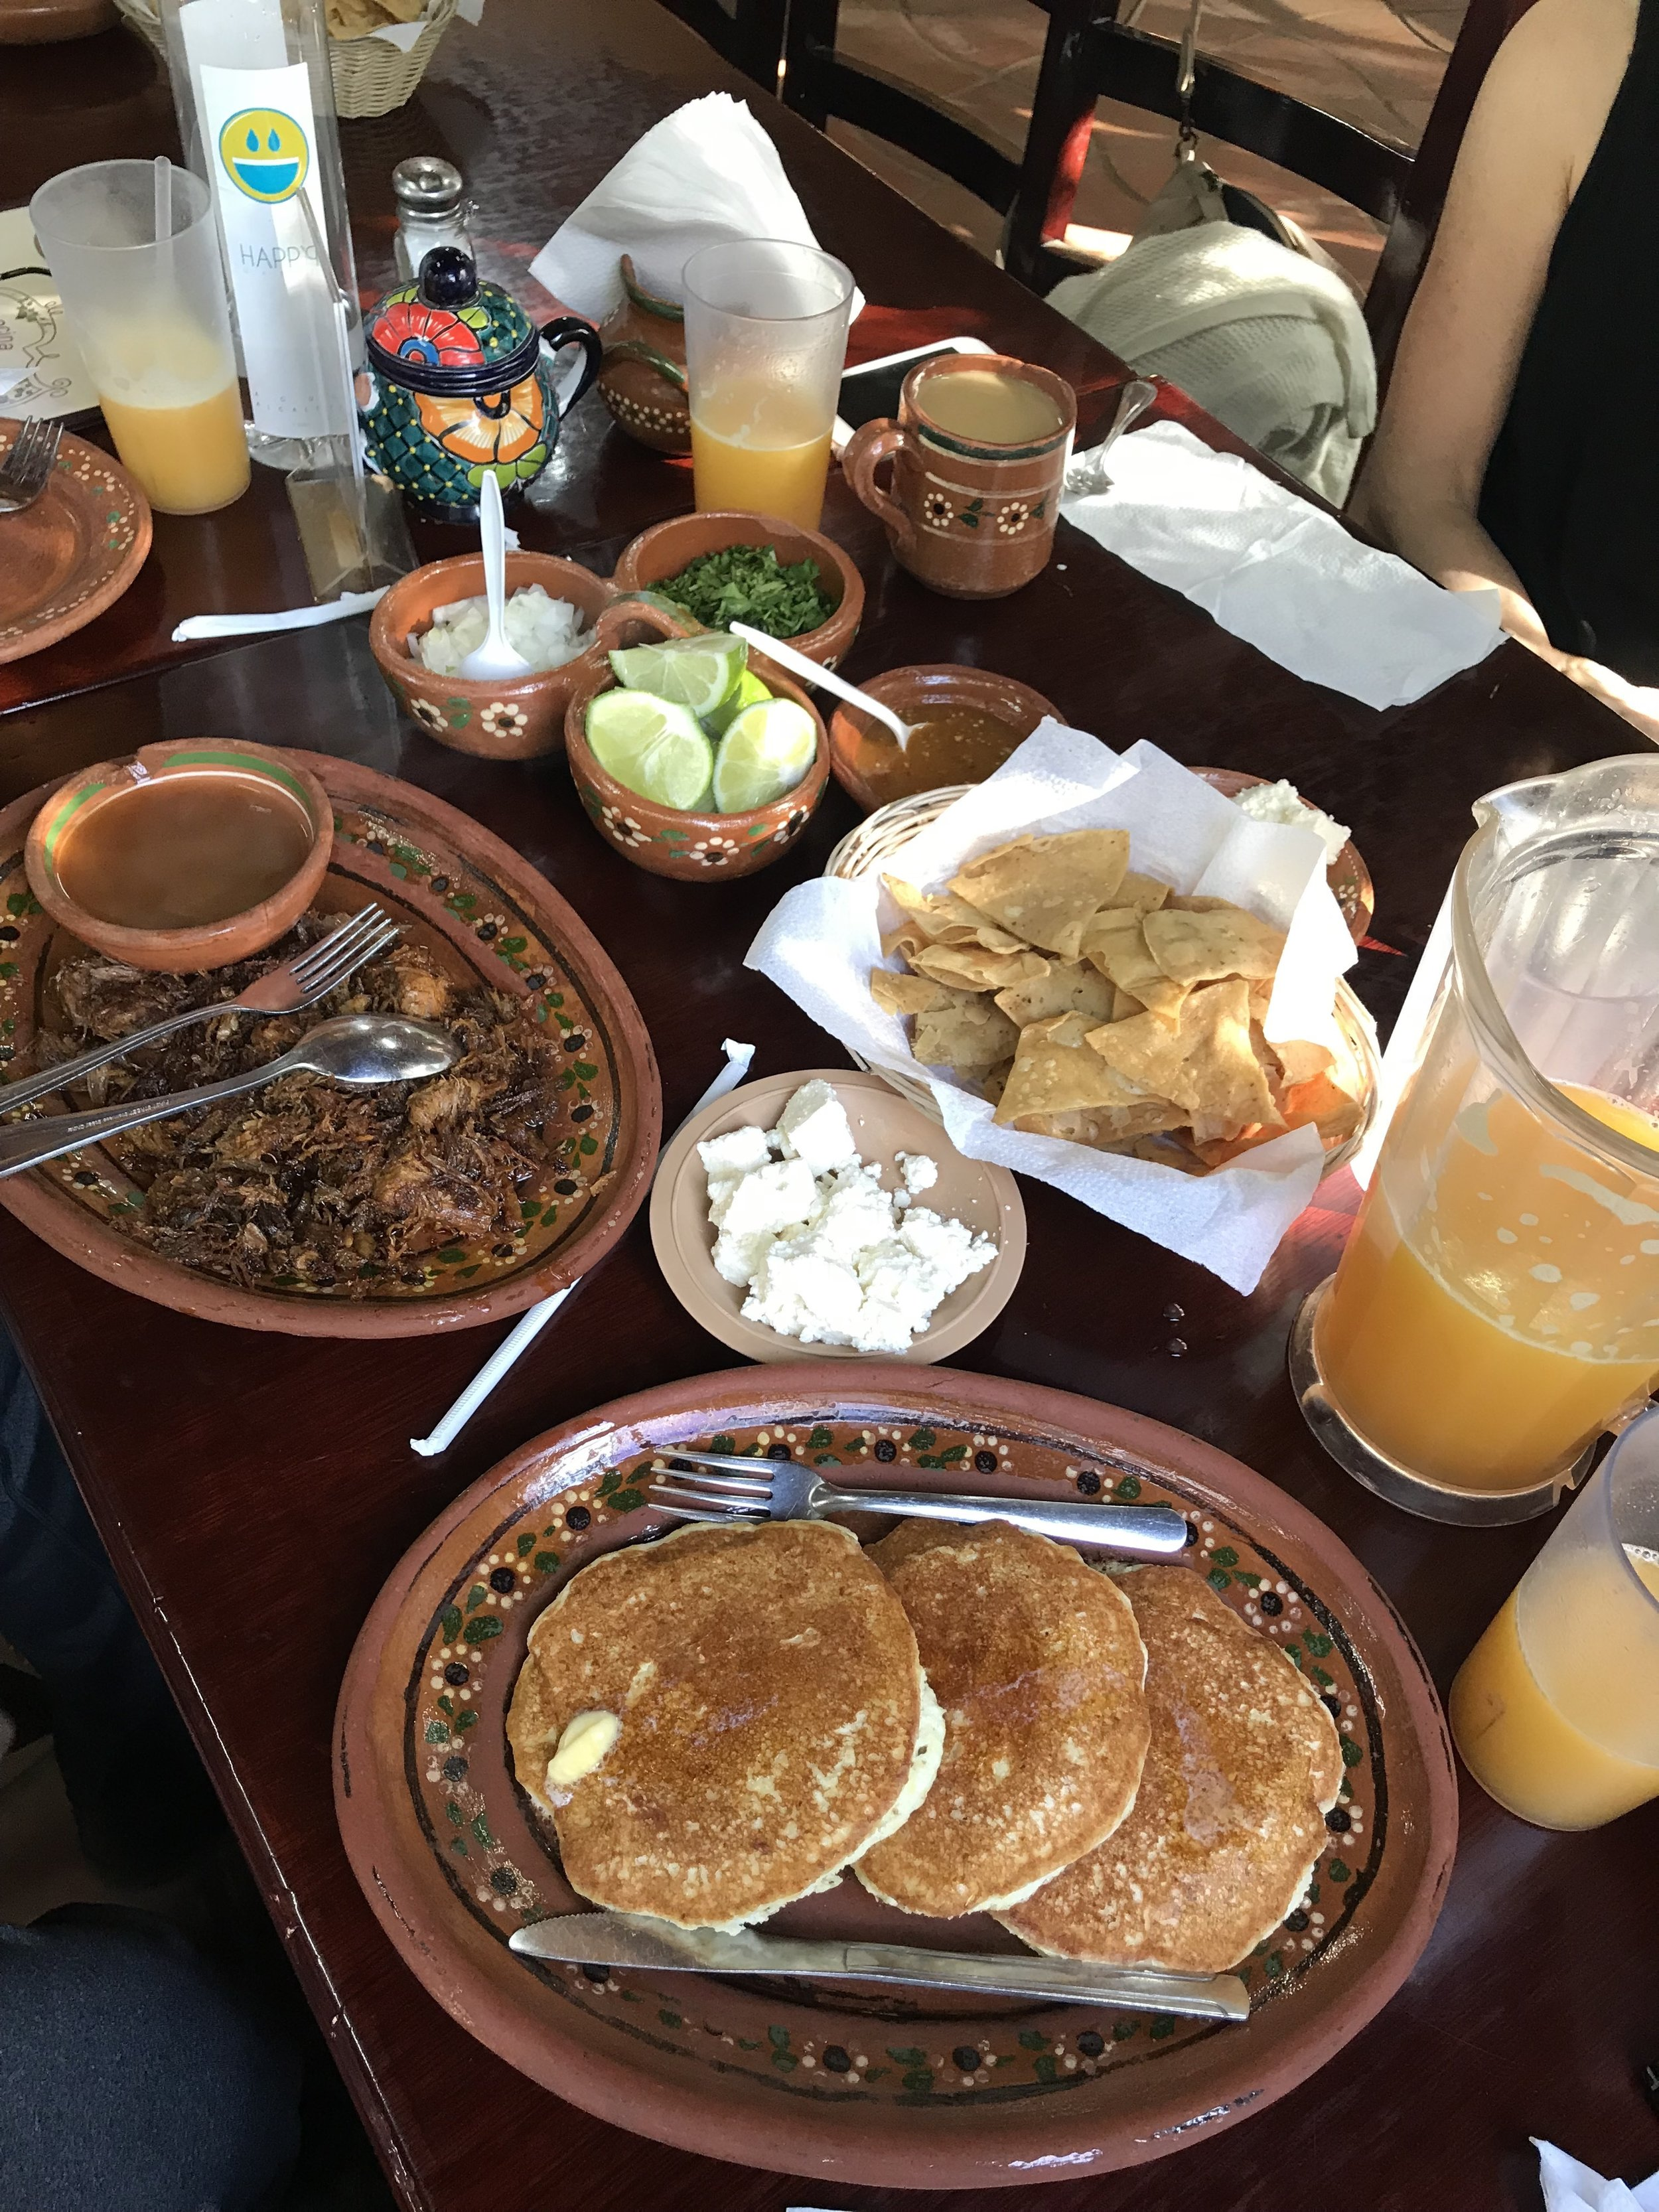 la cocina de doña Esthela is famous for its birria and hot cakes de elote. Arrive early to beat the crowds for breakfast.